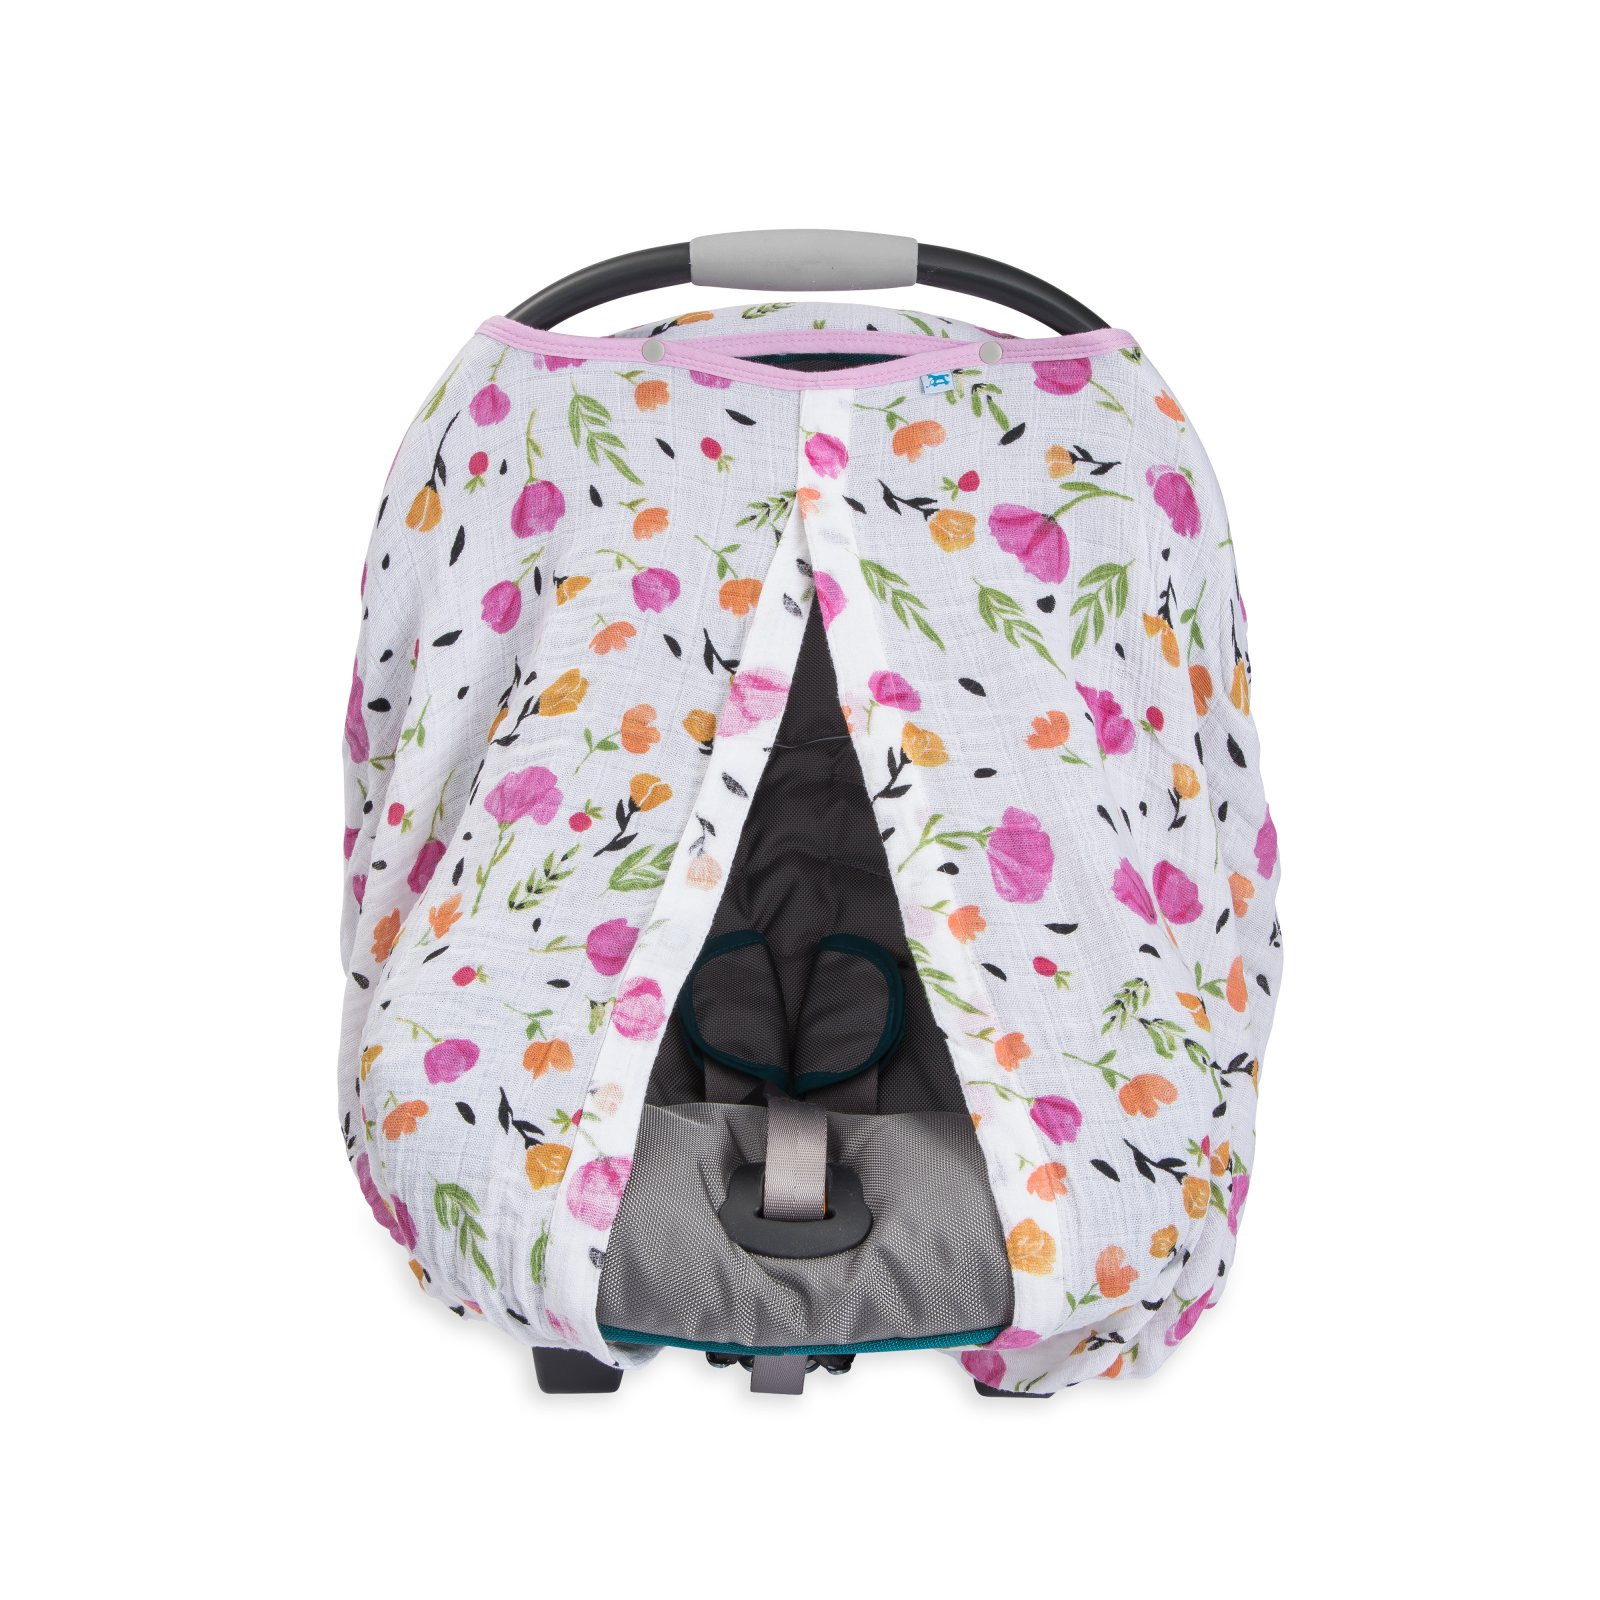 Little Unicorn Cotton Muslin Car Seat Canopy - Berry & Bloom